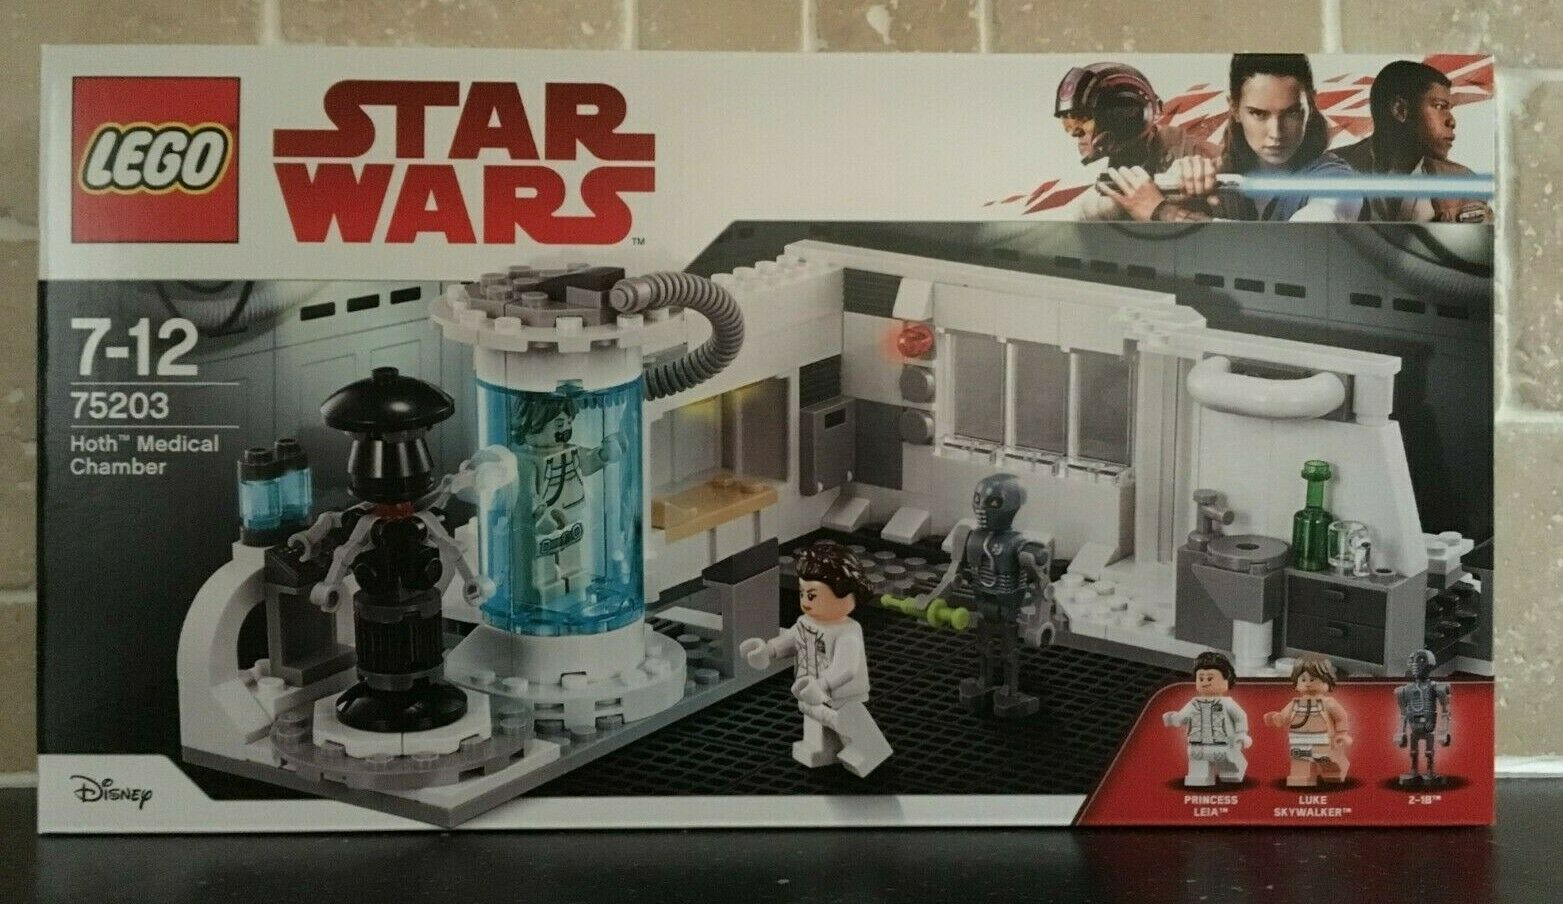 LEGO STAR WARS - 75203 Hoth Medical Chamber Brand New In Sealed Box